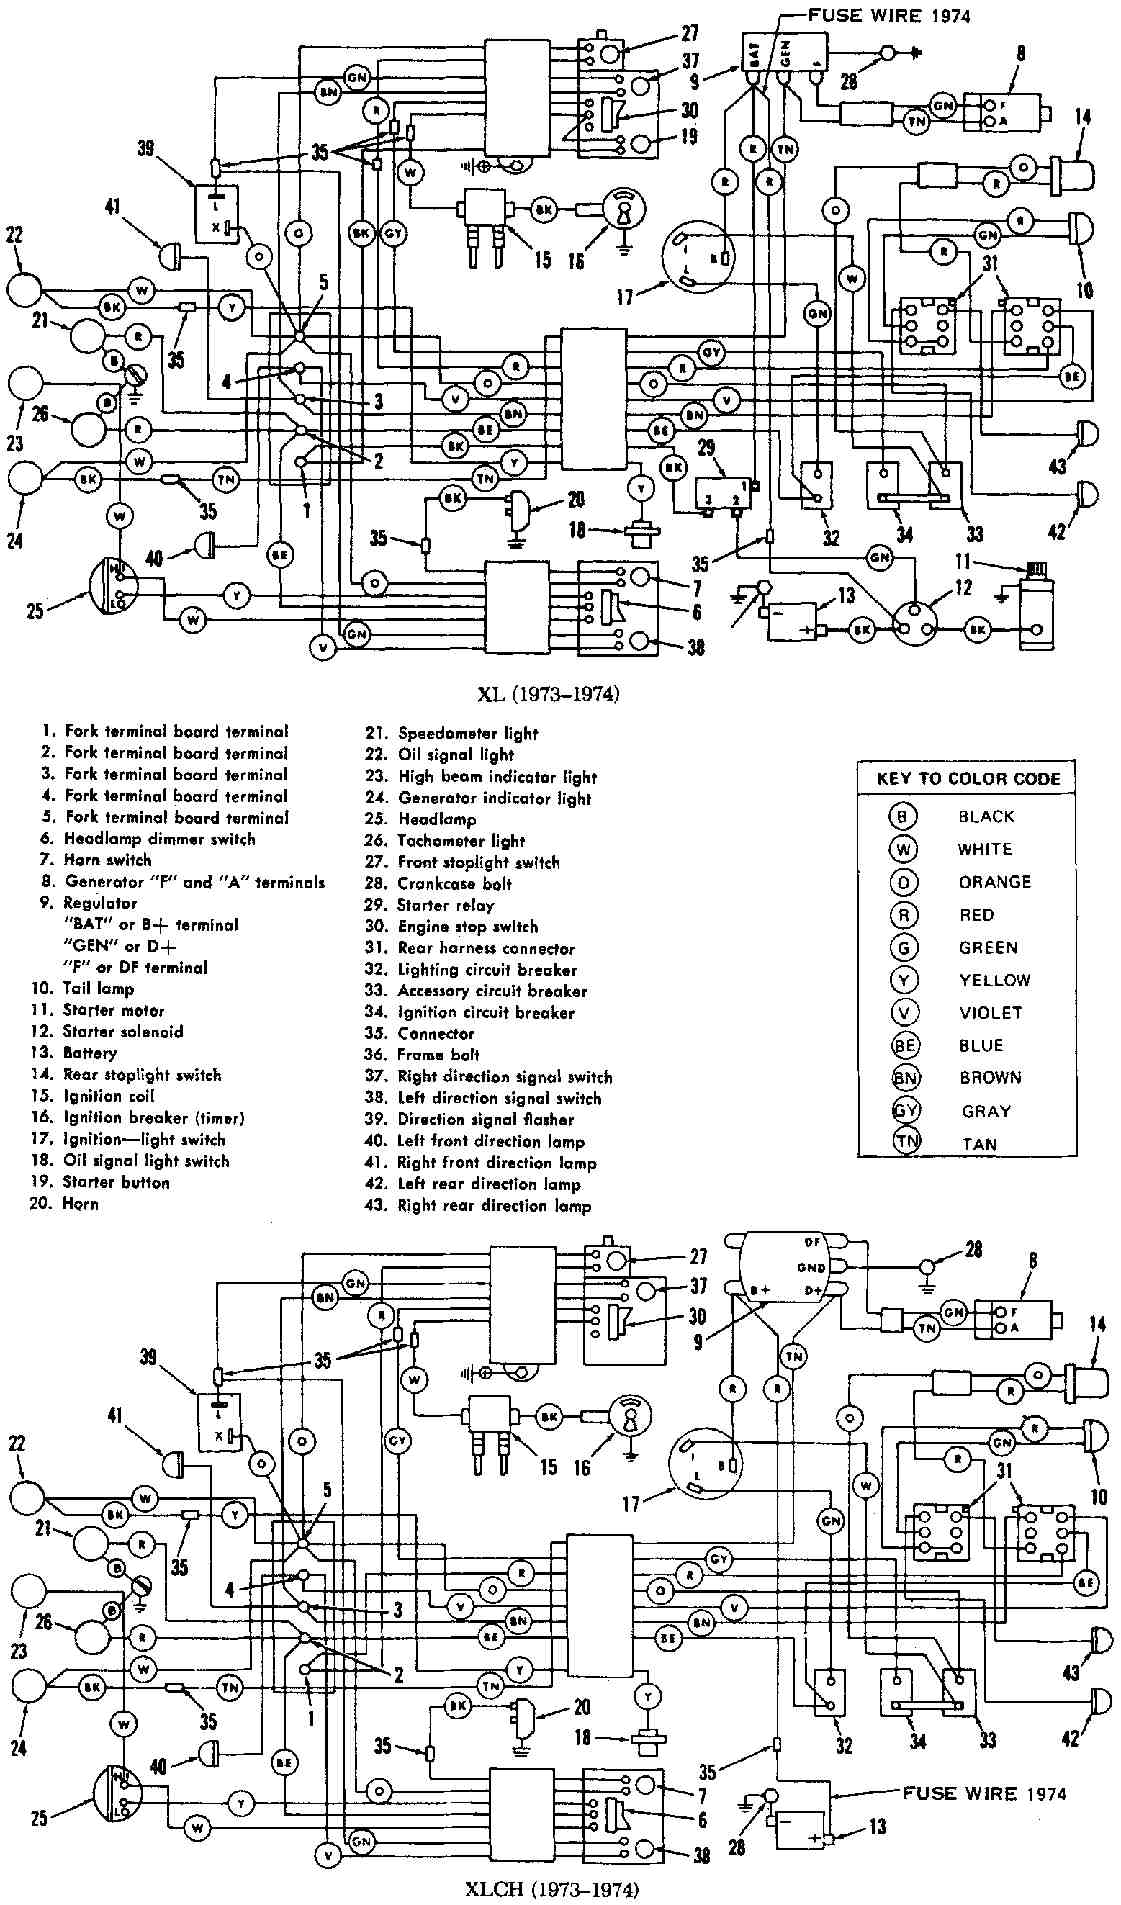 medium resolution of harley flh wiring harness diagram wiring diagram harley shovelhead oil cooler harley flh wire harness schematic